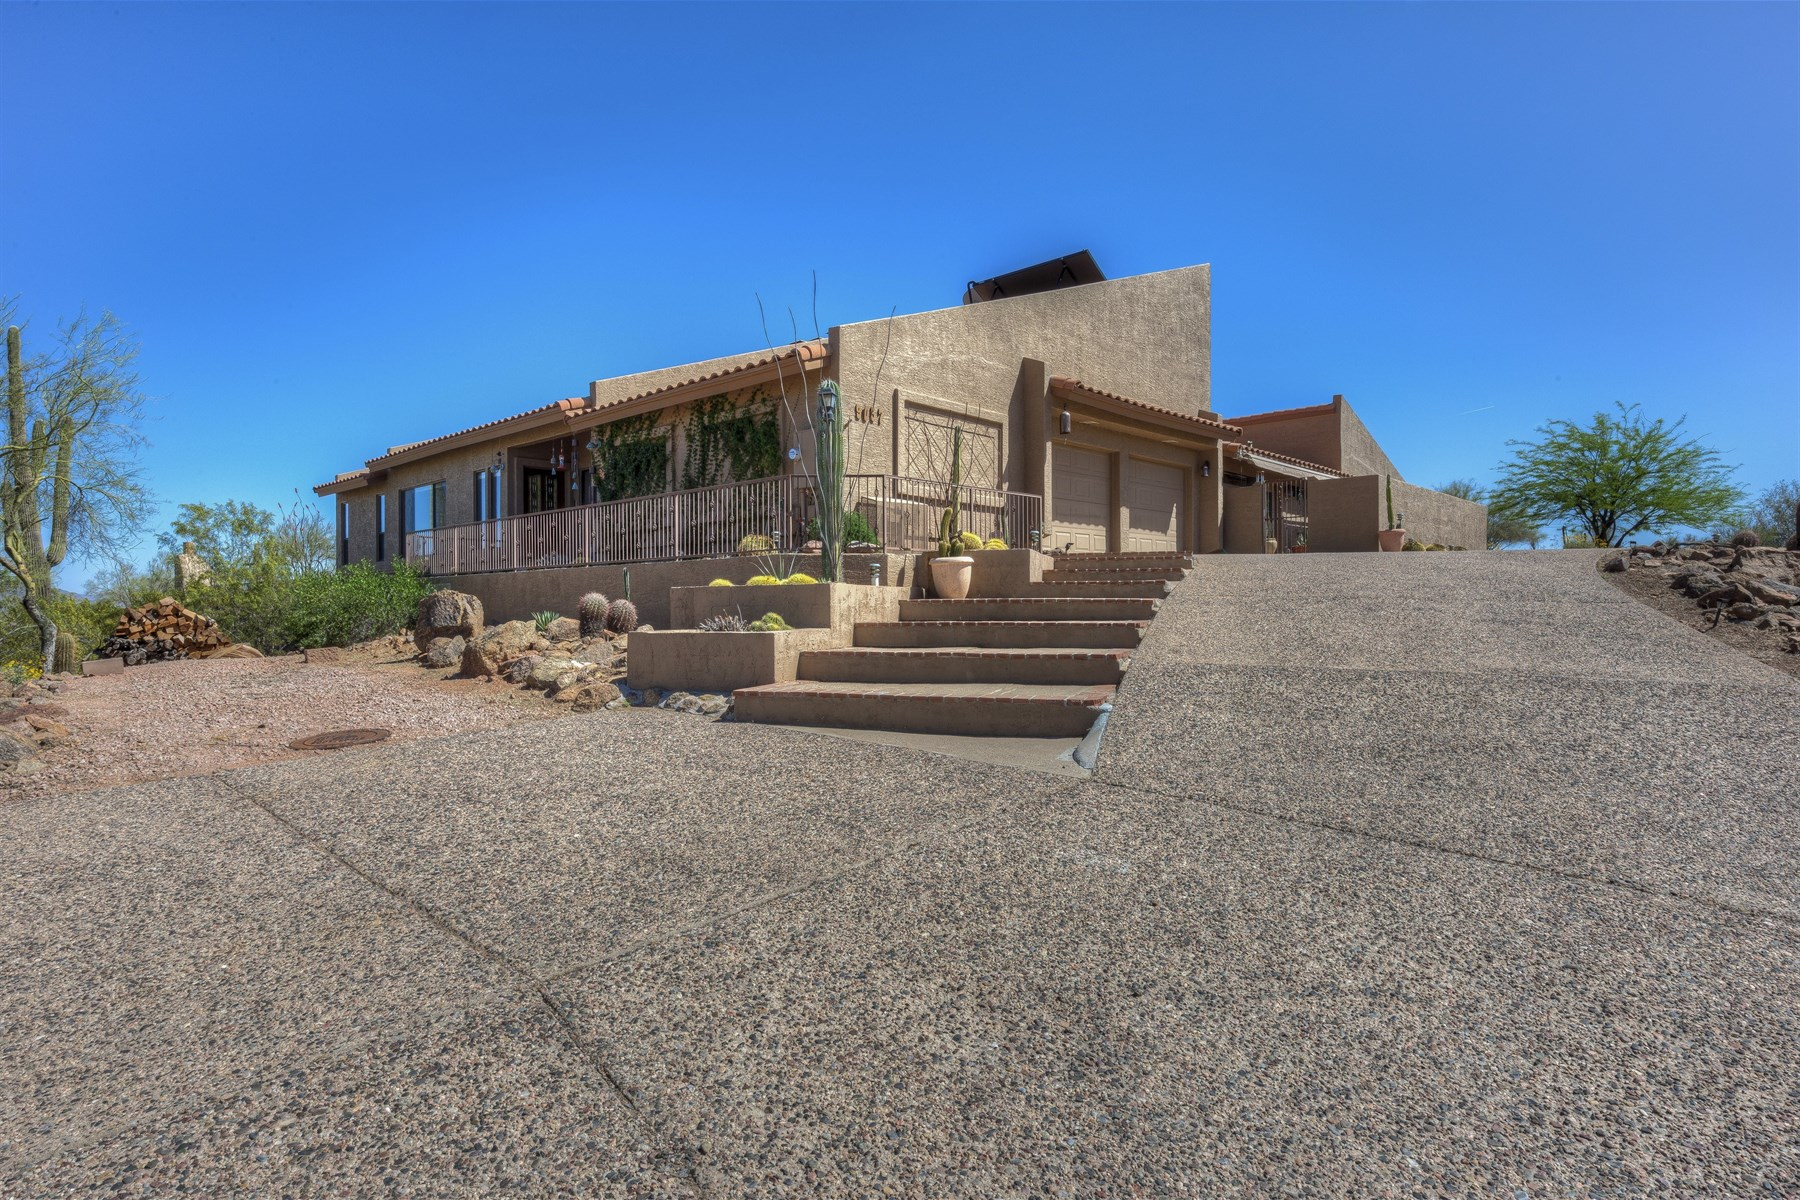 Single Family Home for Sale at Contemporary home in Fountain Hills 9057 N Leo Dr Fountain Hills, Arizona, 85268 United States